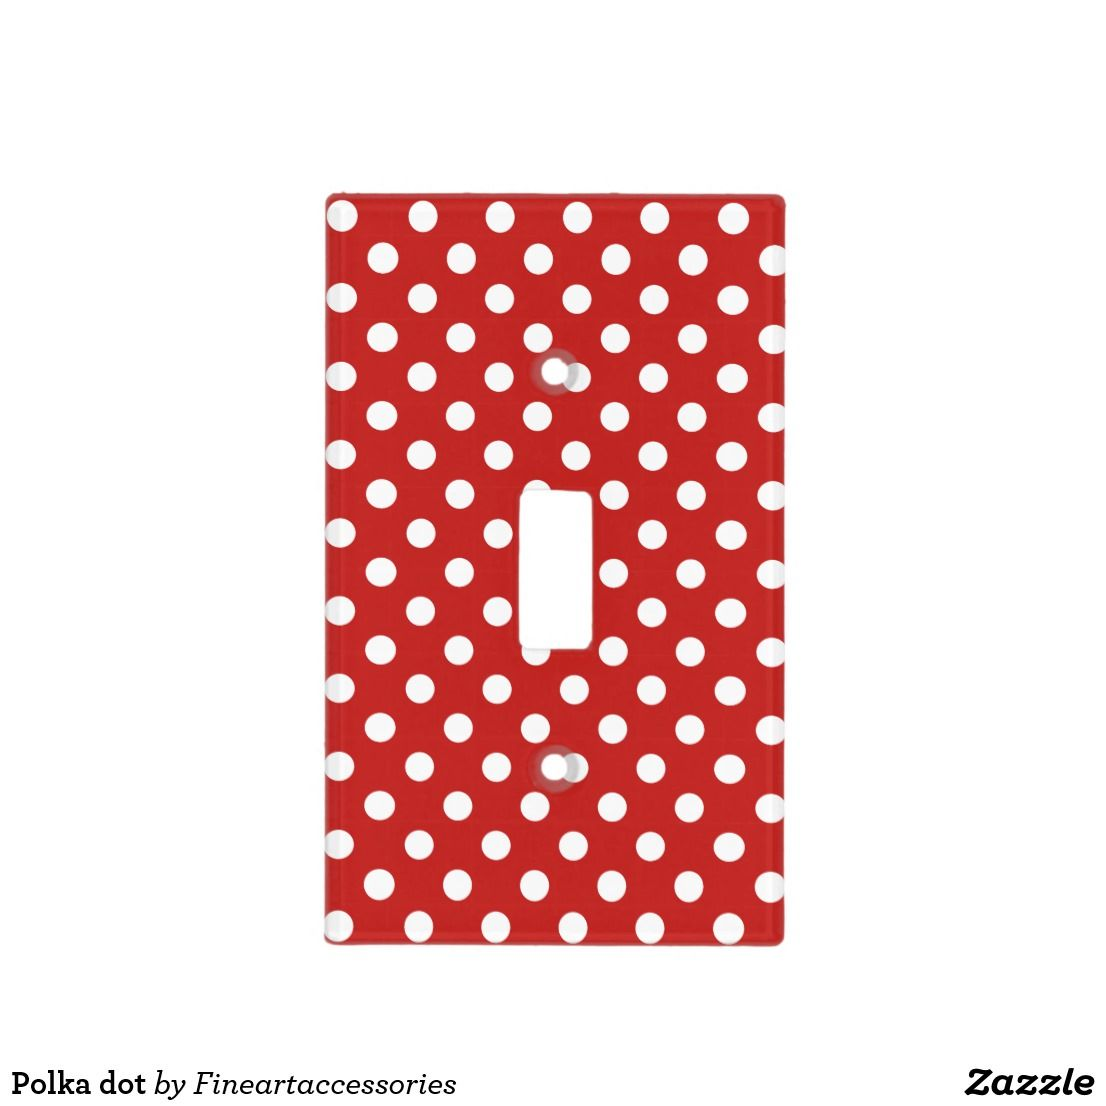 Polka Dot Light Switch Cover Switch Covers Light Switches And Lights